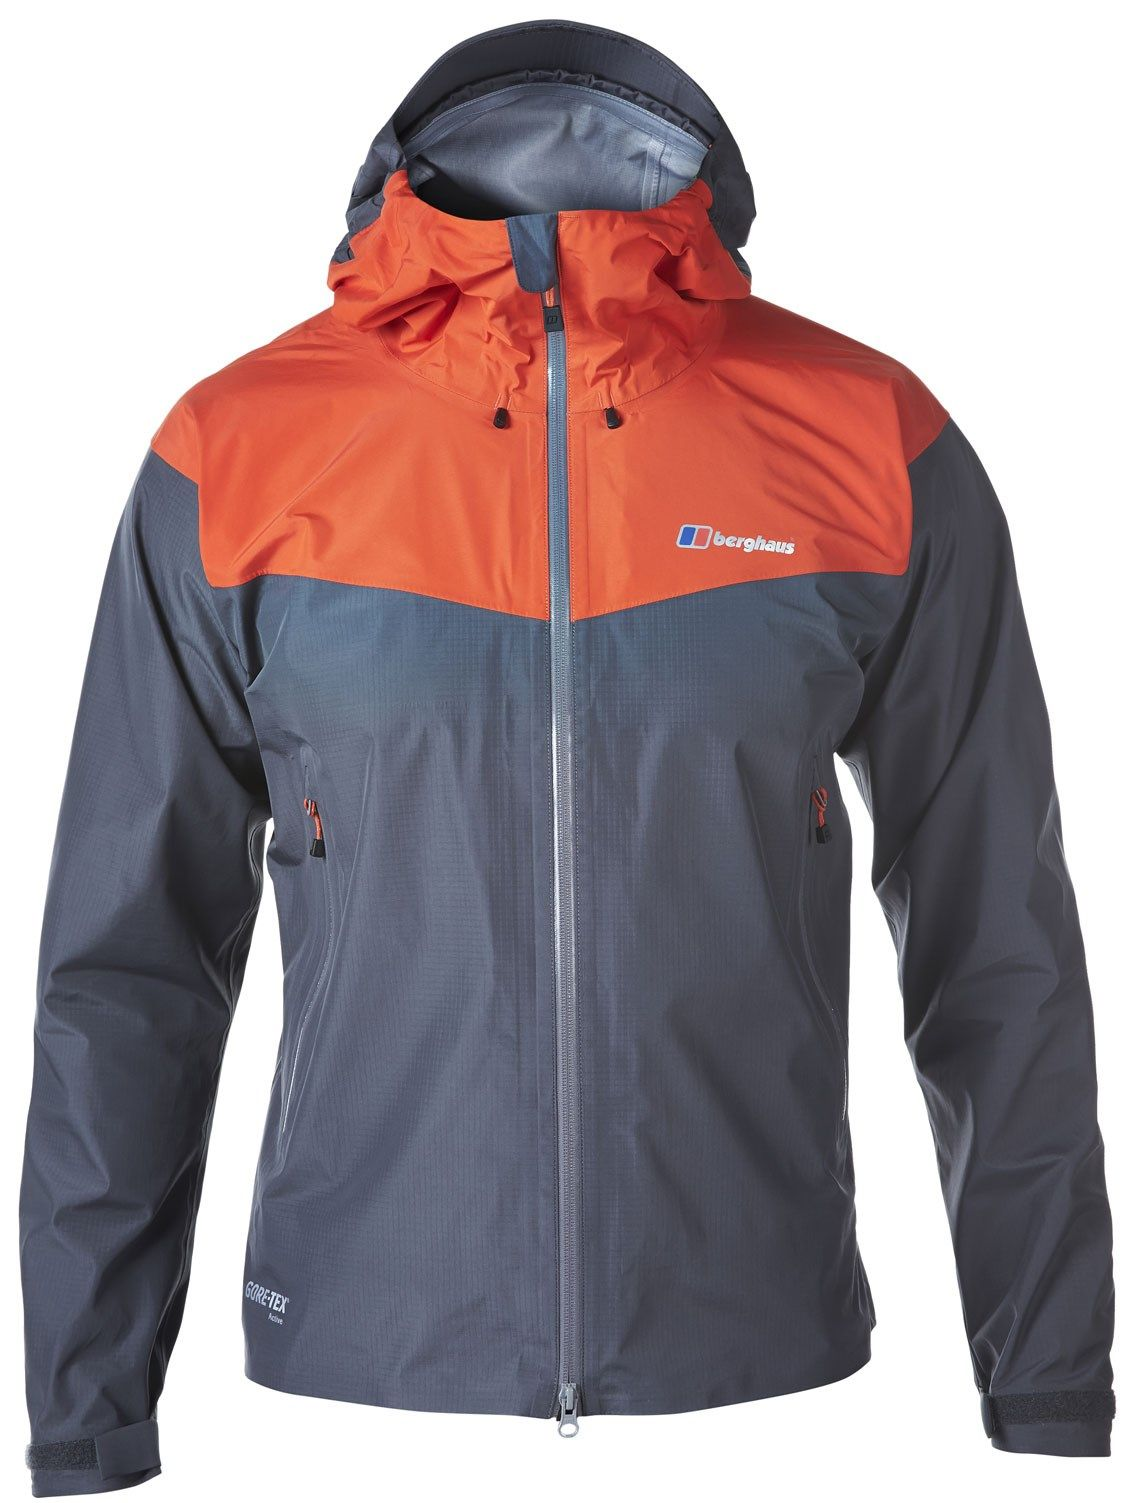 A super lightweight waterproof jacket which is durable